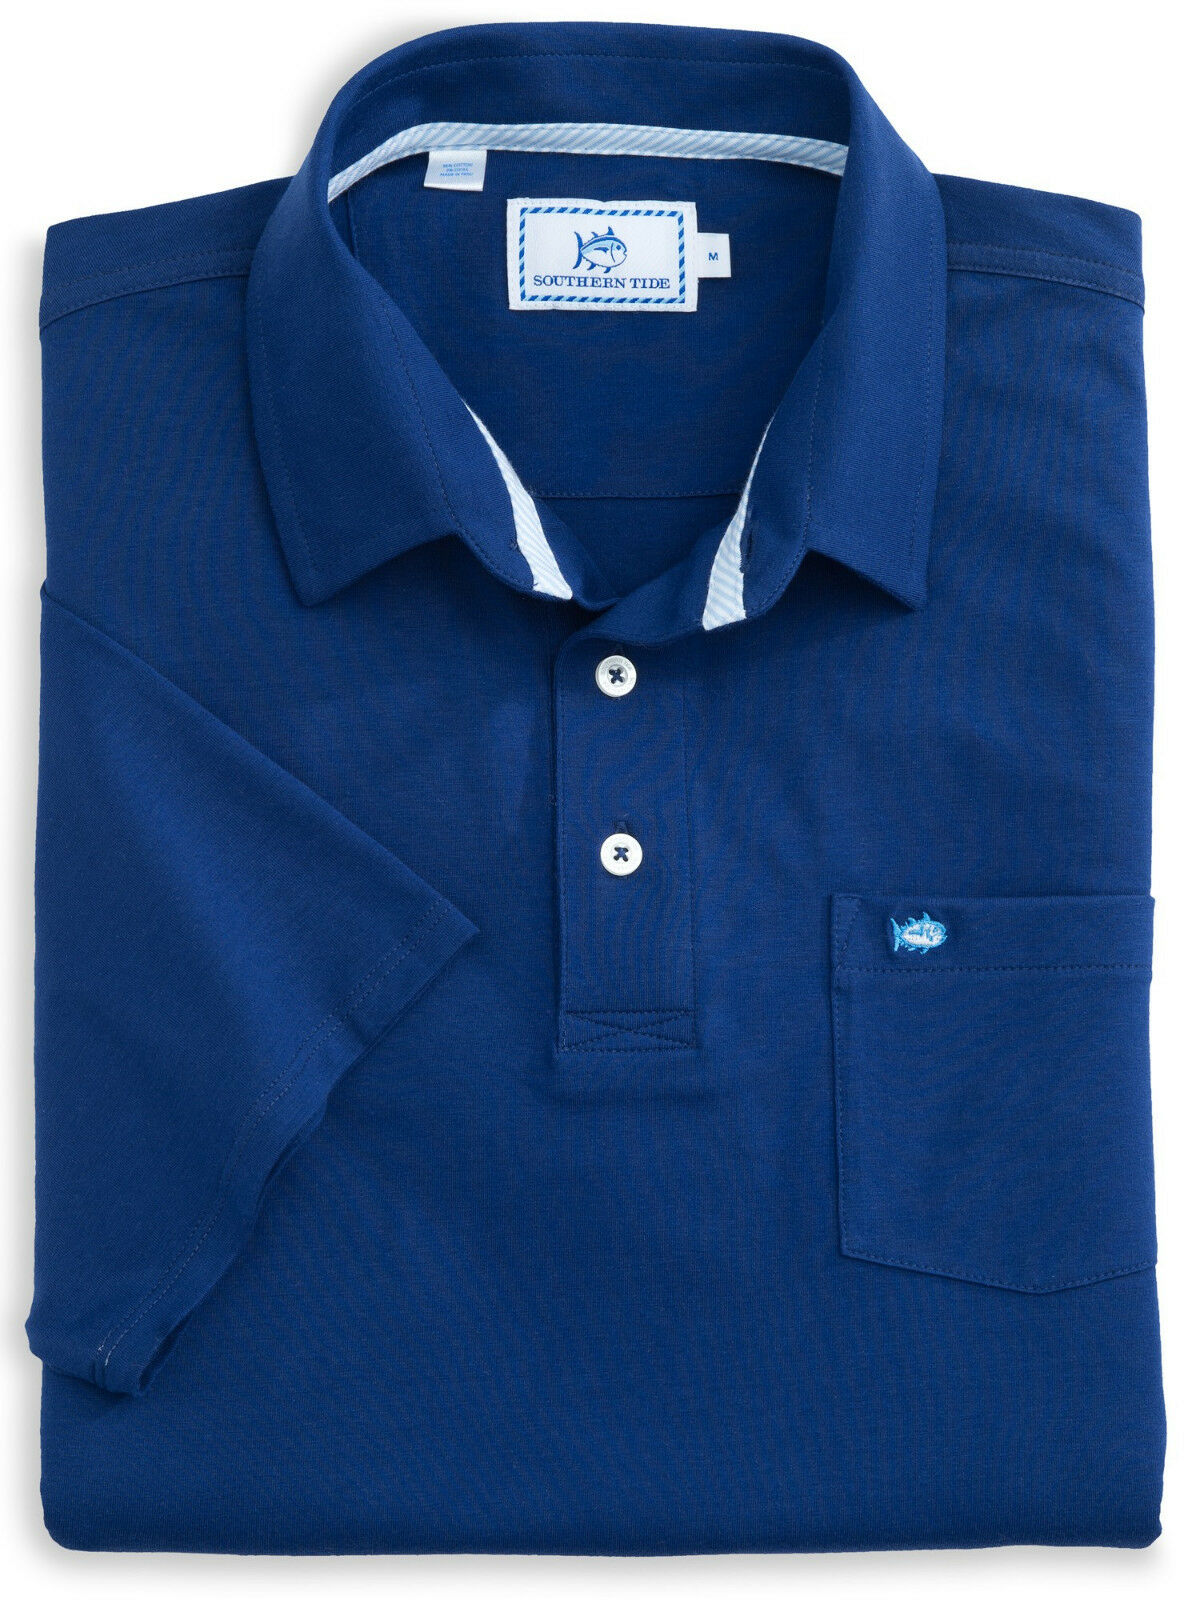 NWT Southern Tide Men's Channel Marker bluee Short Sleeve Polo Shirt Small